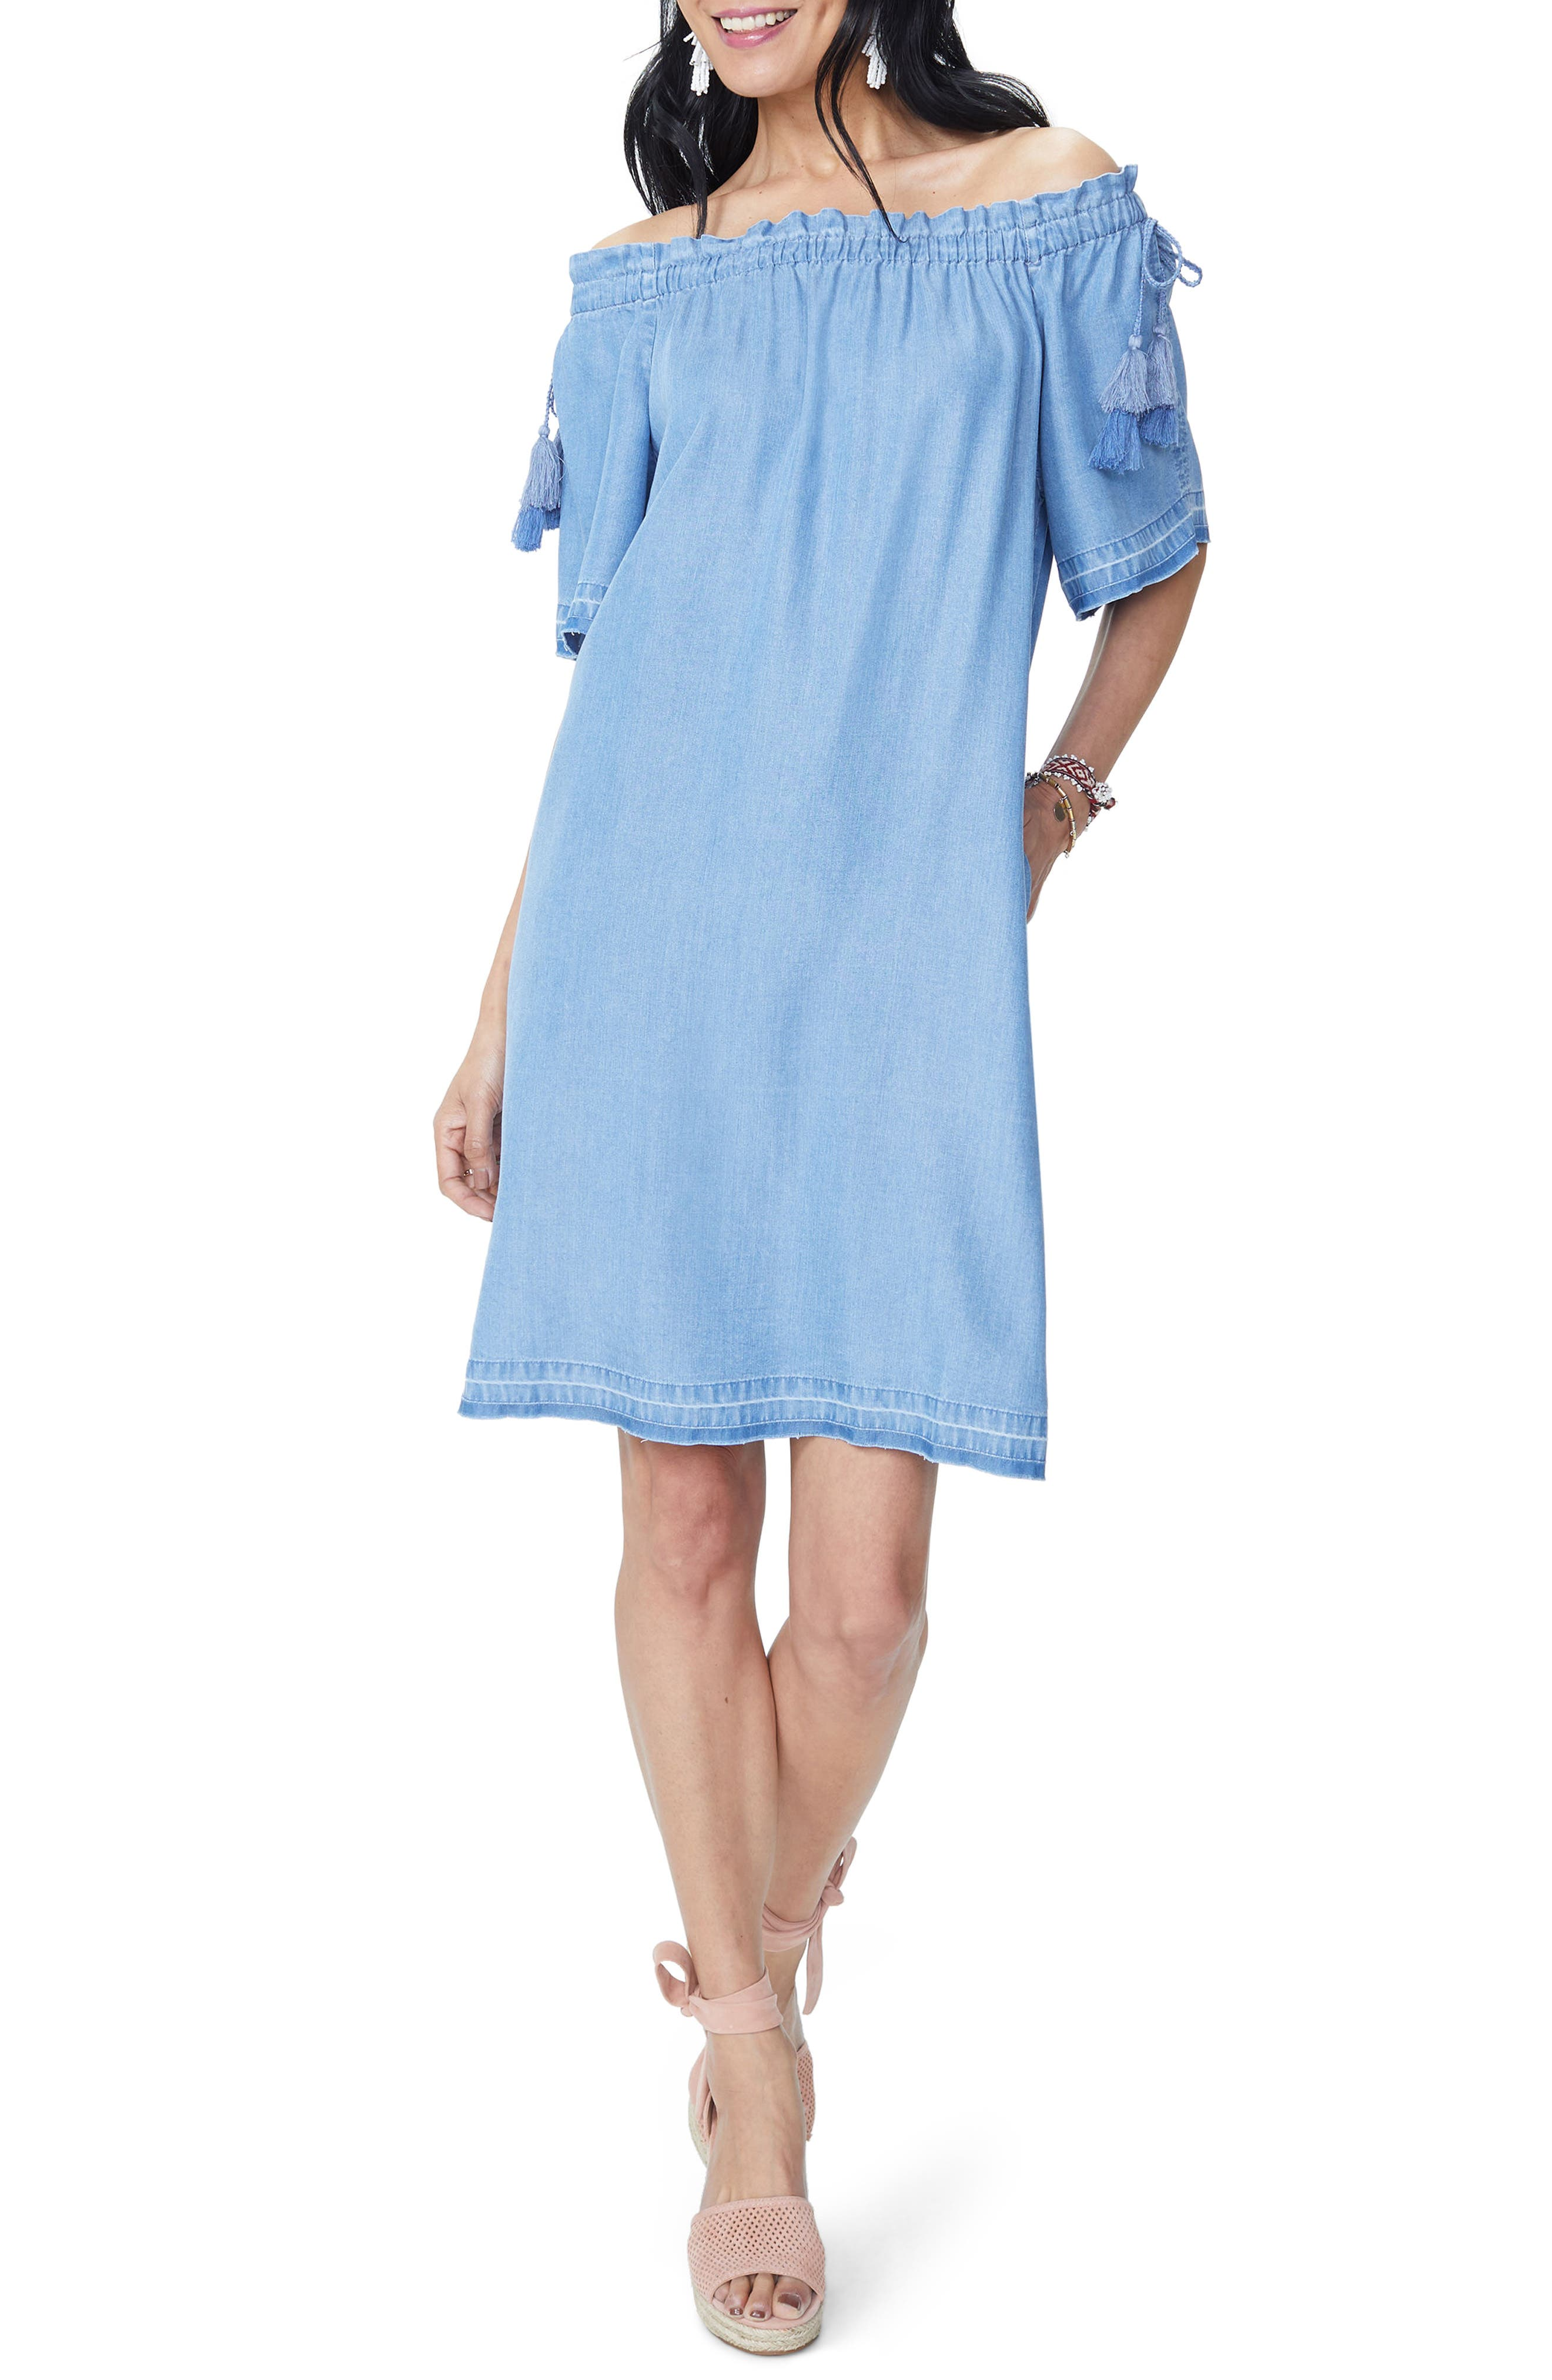 Off the Shoulder Tassel Tie Chambray Dress,                             Main thumbnail 1, color,                             Low Tide Wash